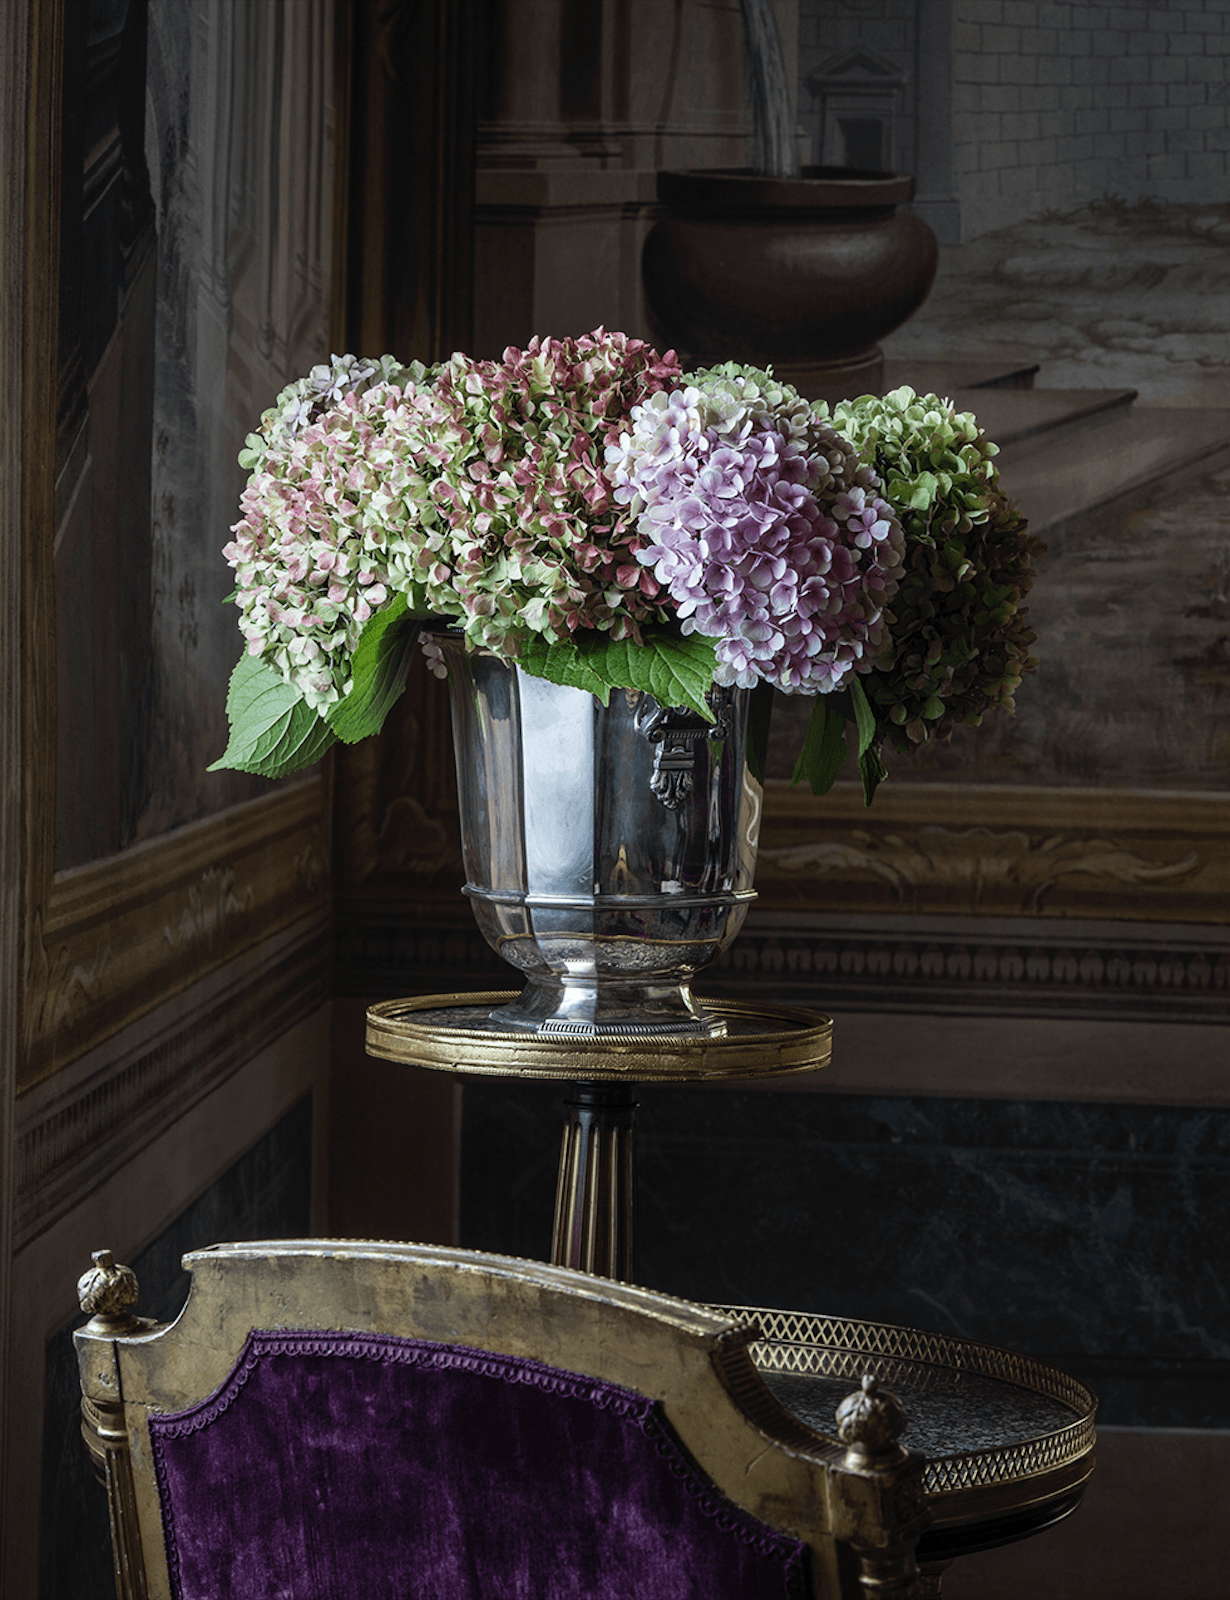 Villa Balbiano luxury property Lake Como Milan Italy classic decor decoration exquisite service best accommodation wedding events vintage silver vase flower design